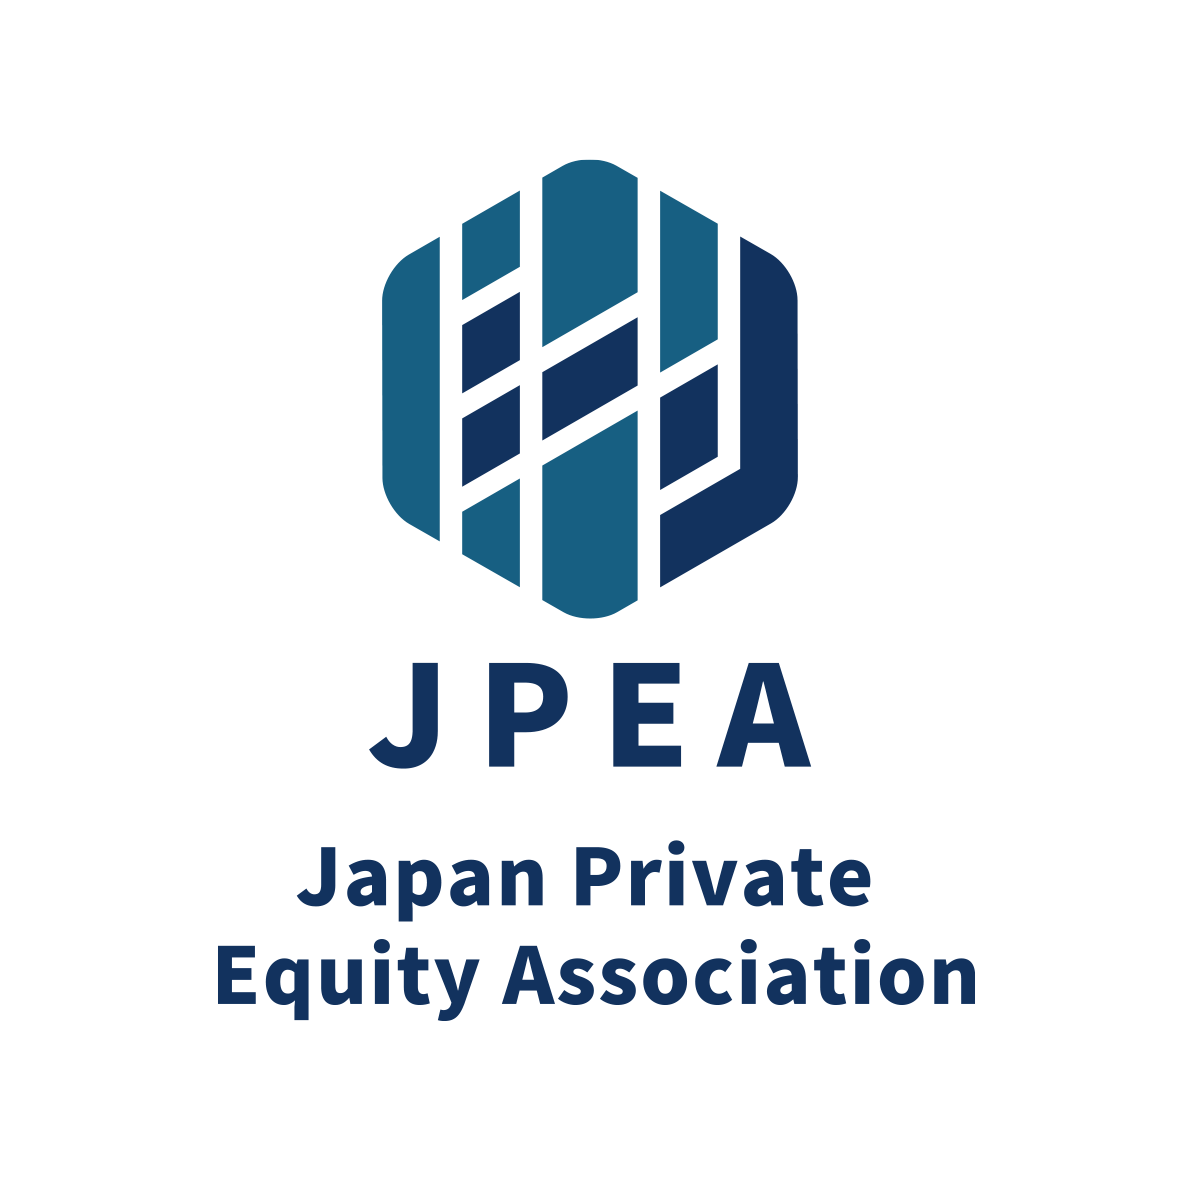 JPEA The Japan Private Equity Association